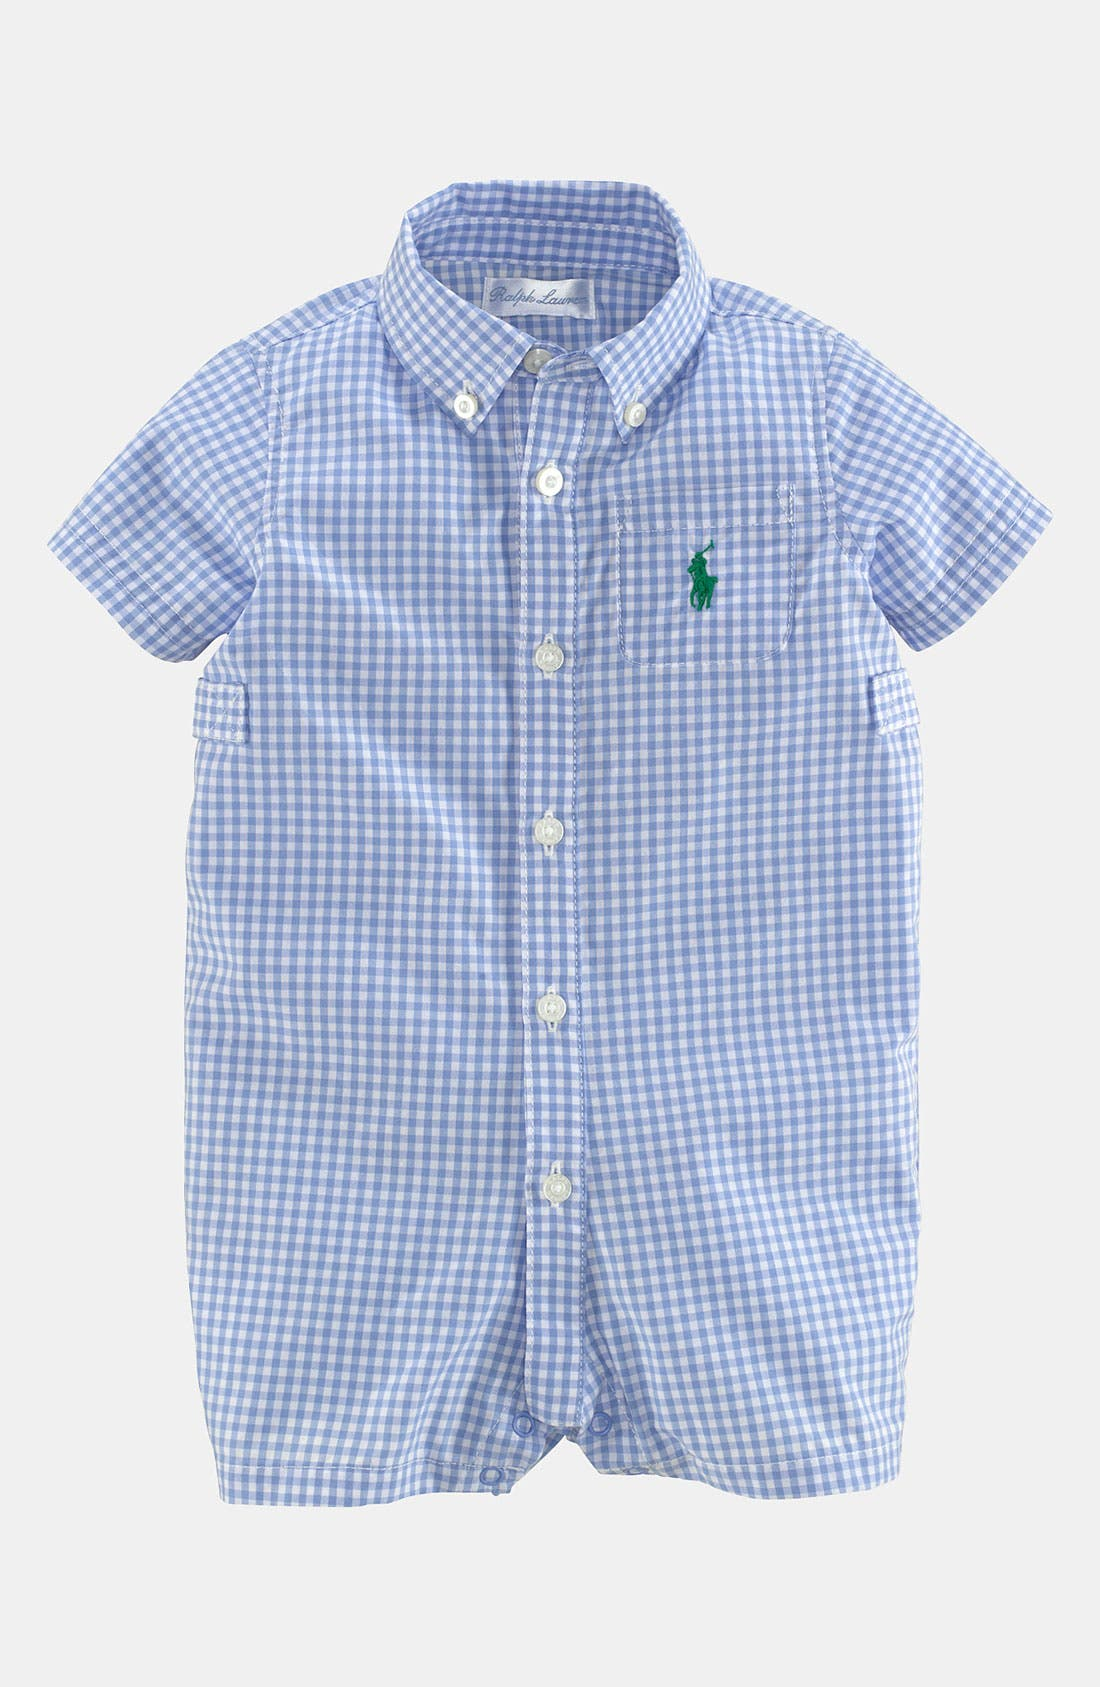 Alternate Image 1 Selected - Ralph Lauren Gingham Romper (Baby)